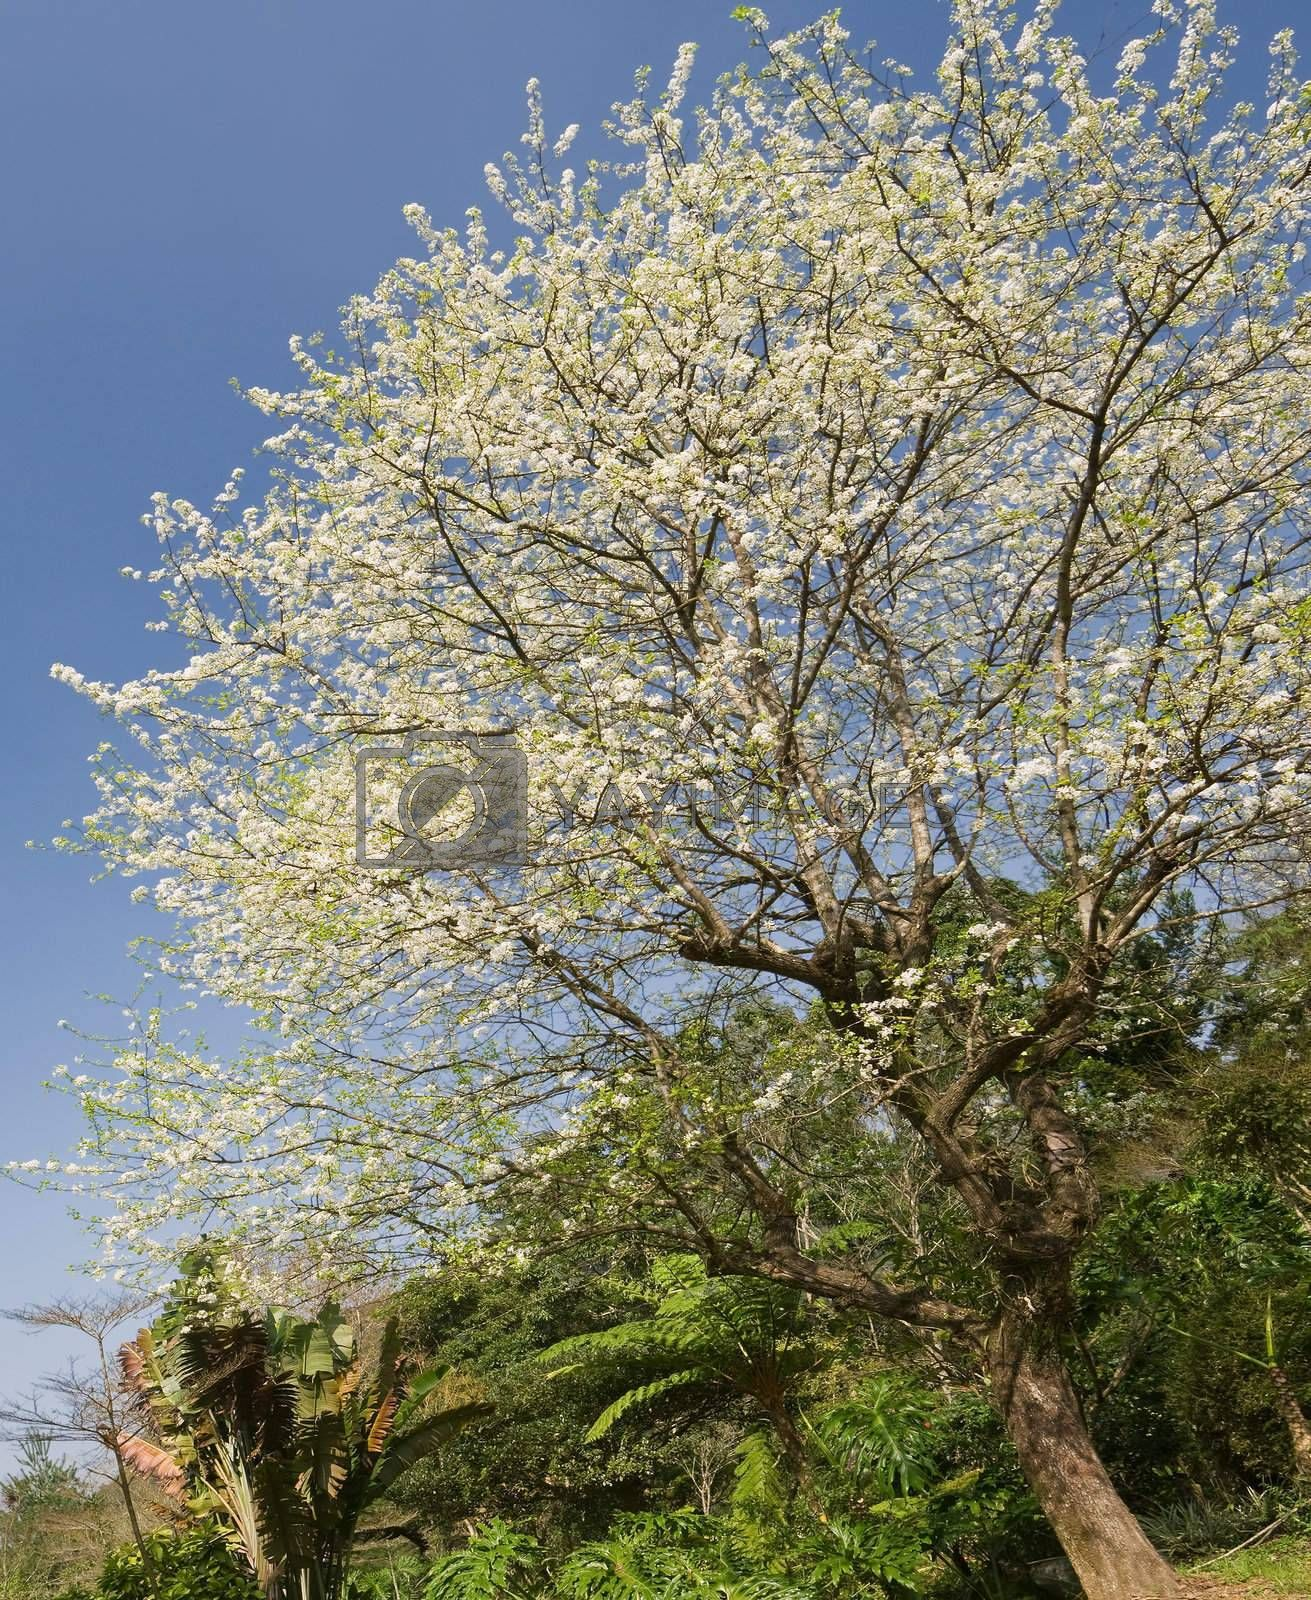 White flowers in tree of hawthorn against blue sky.